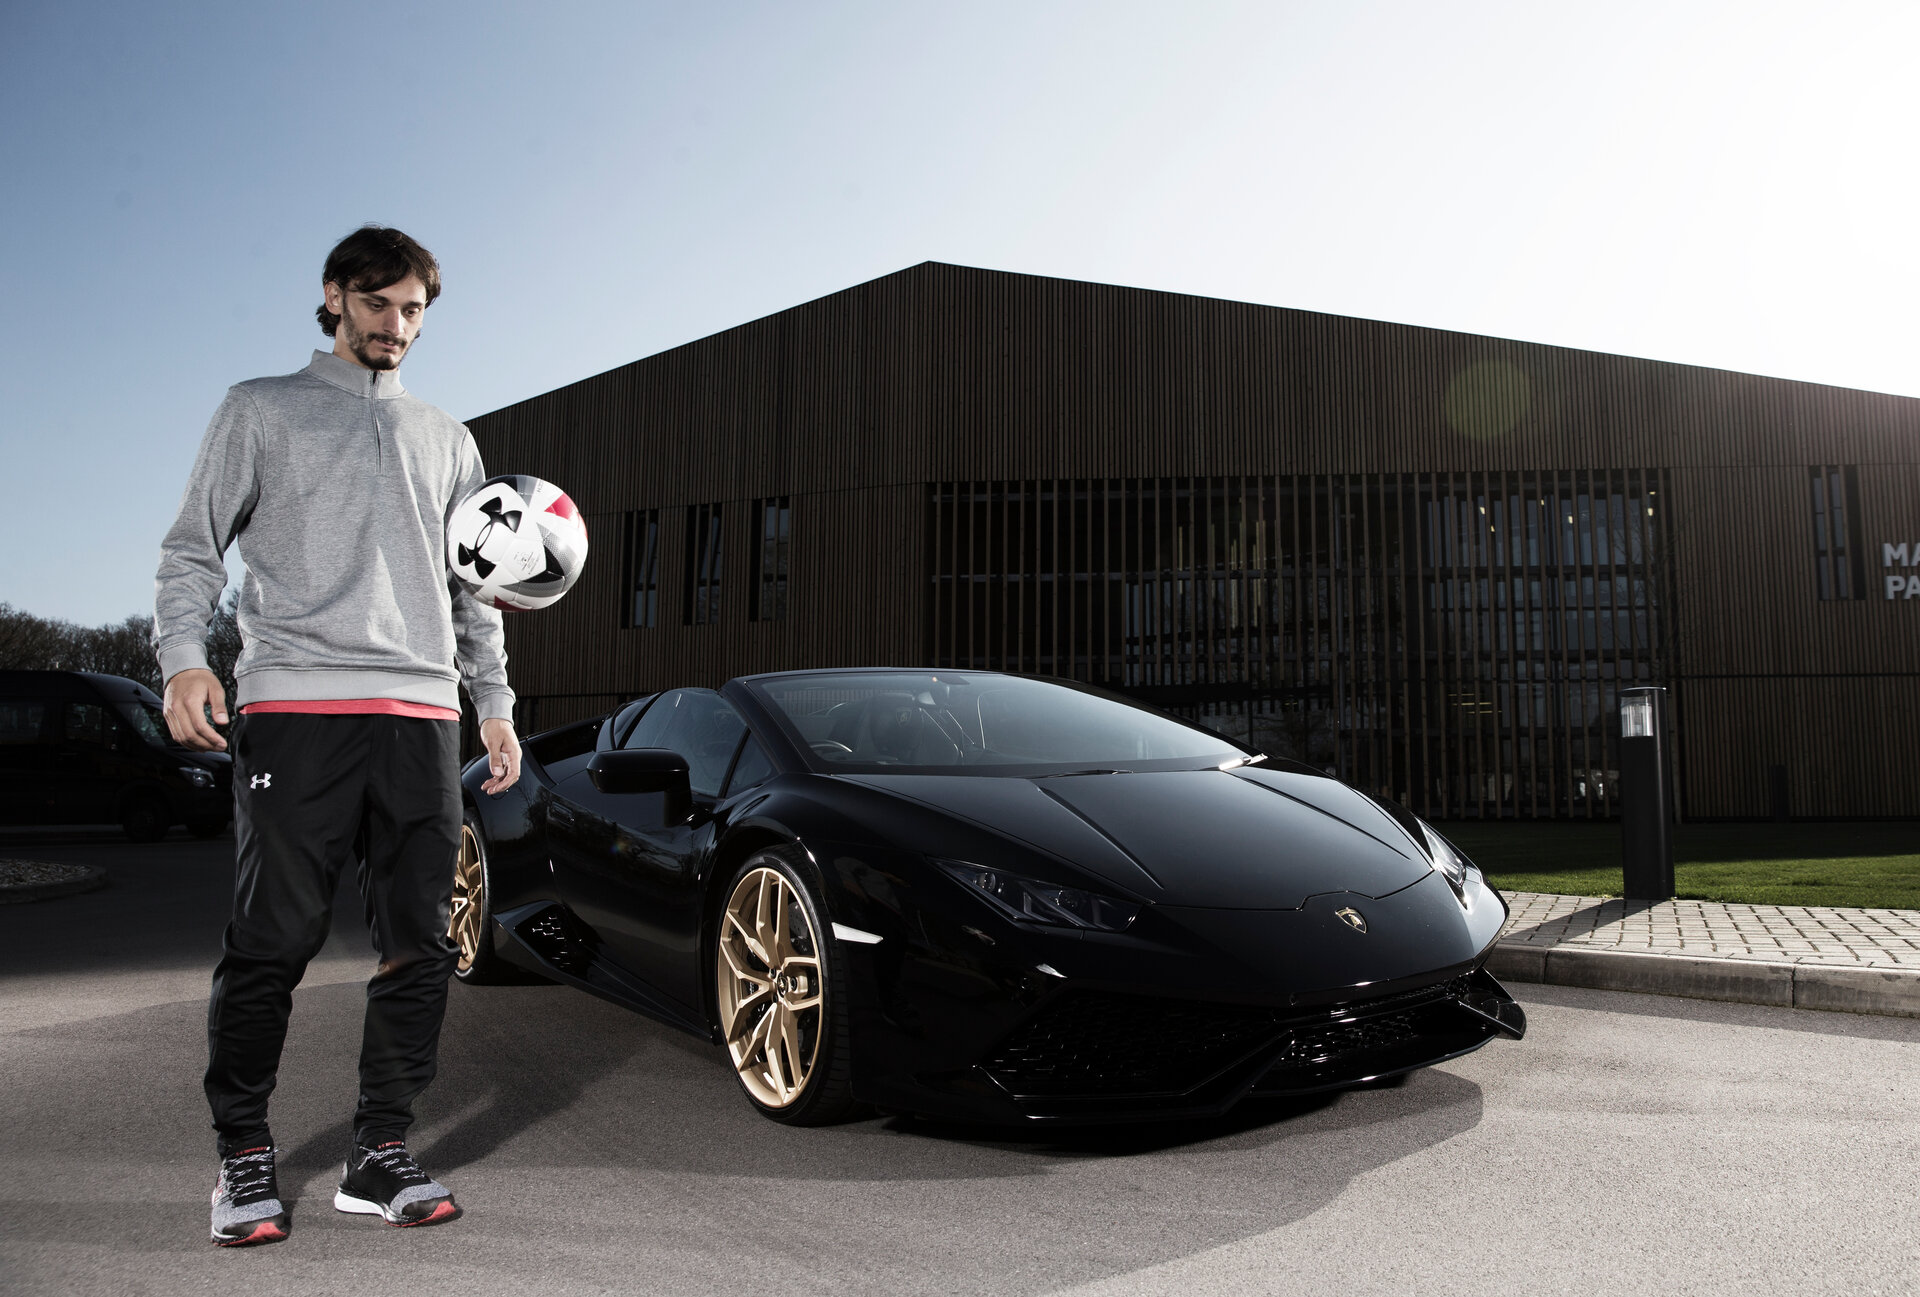 Manolo Gabbiadini pictured with a Lamborghini, for Saints magazine at the Staplewood Campus, Southampton, 15th March 2017